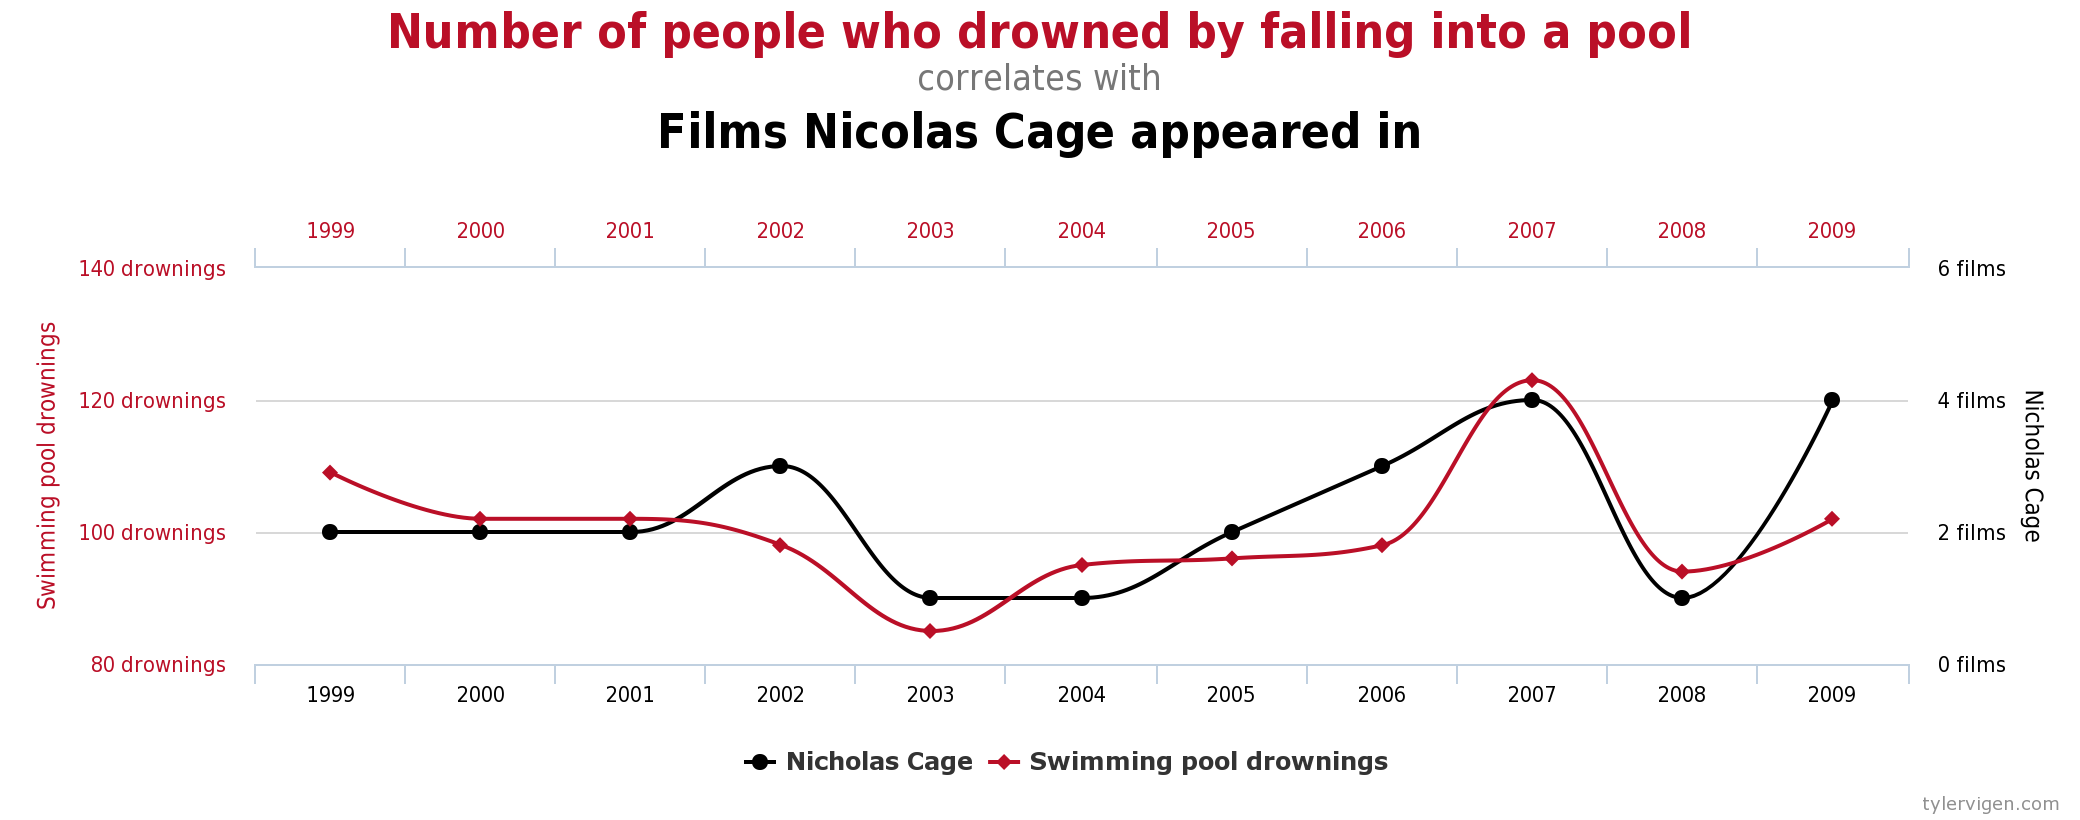 Figure 2.5 Example of a Spurious Correlation Source: http://tylervigen.com/spurious-correlations (CC-BY 4.0)